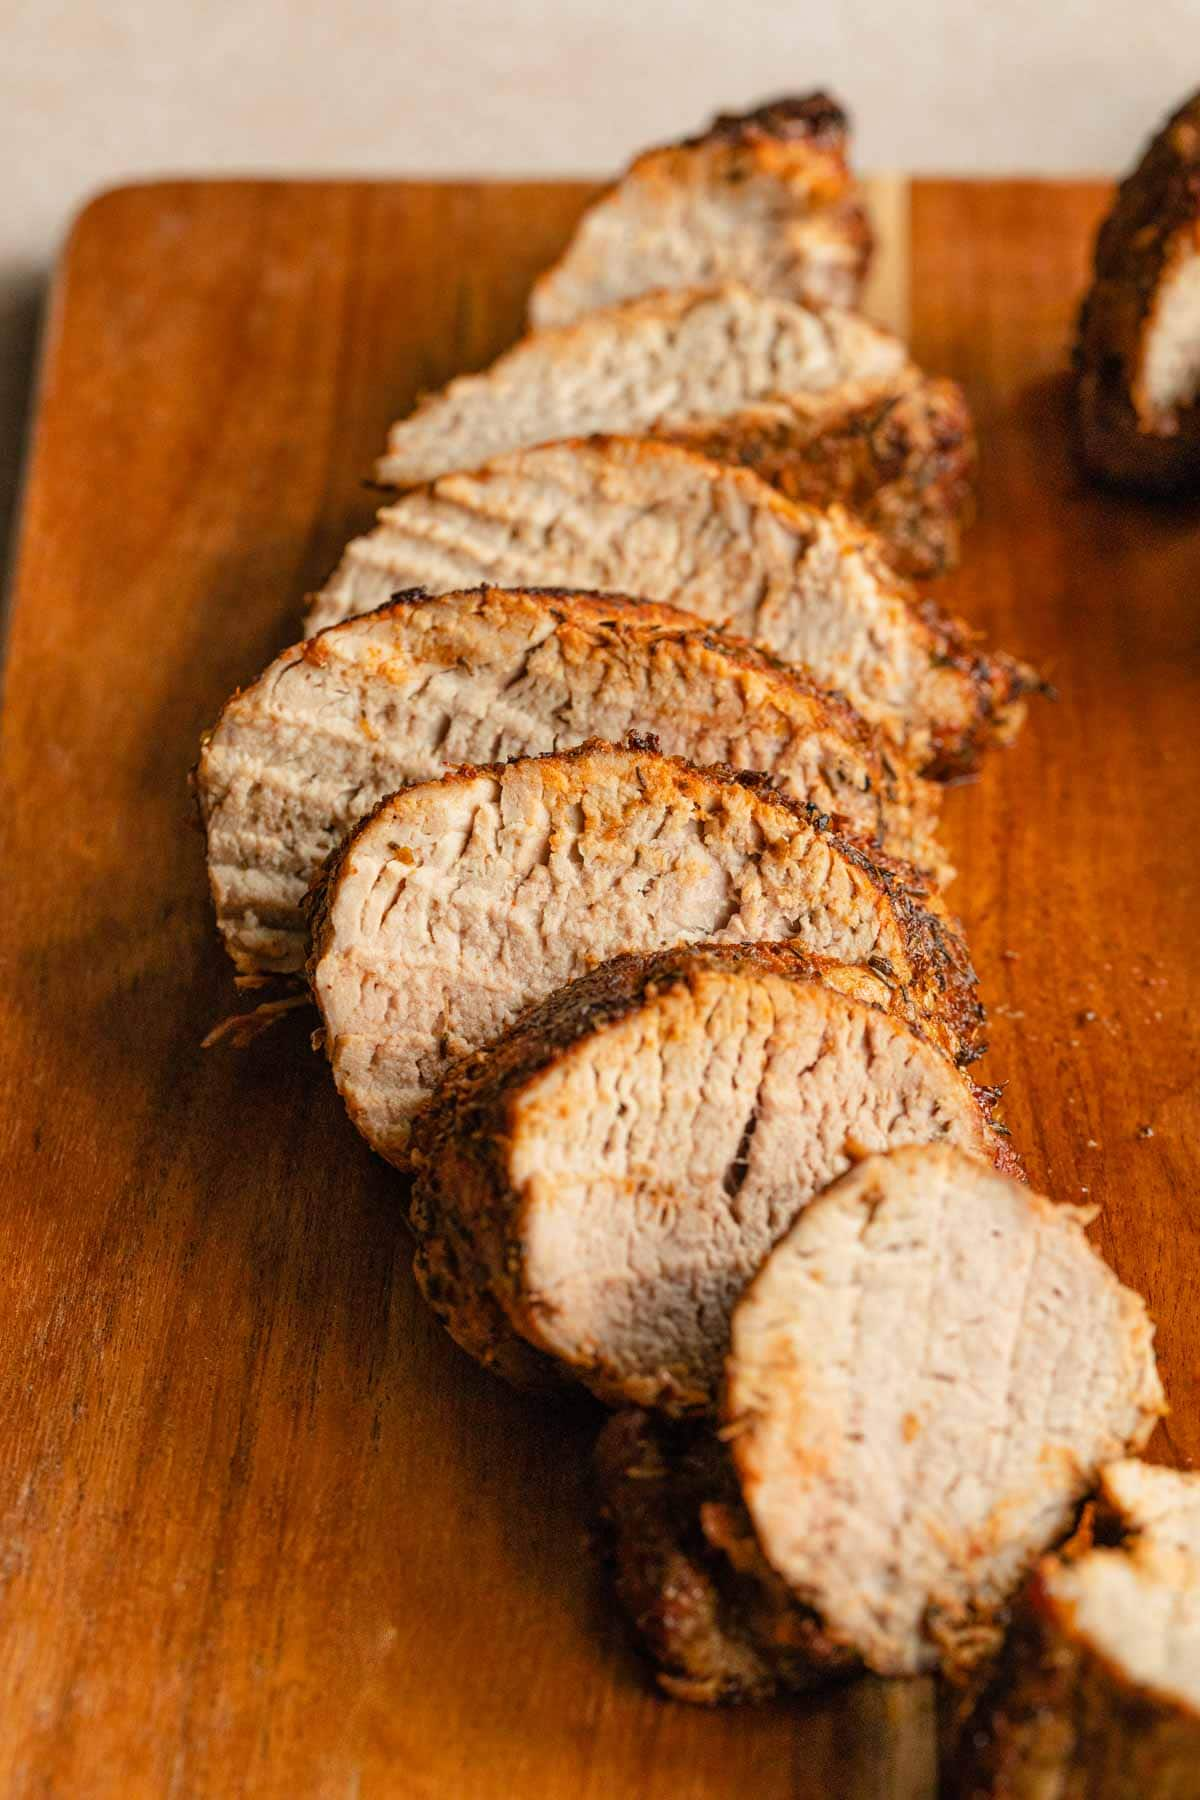 Side view of pork tenderloin slices on a wooden cutting board.